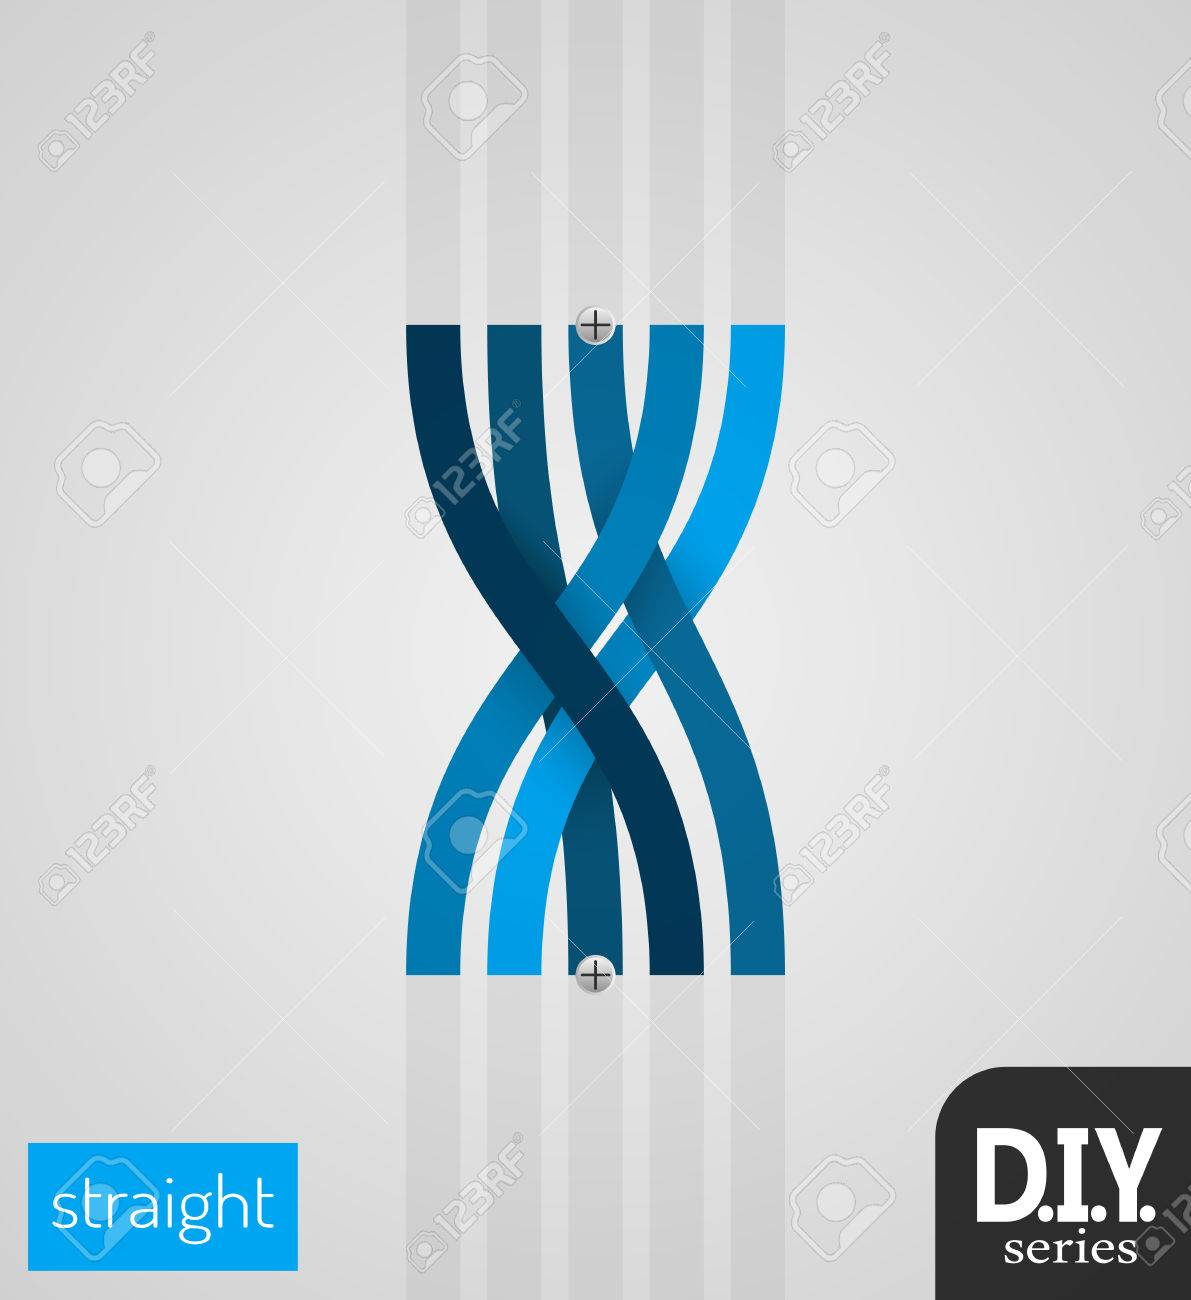 Do It Yourself - Straight Section Easy to use EPS10 Vector - 51785694